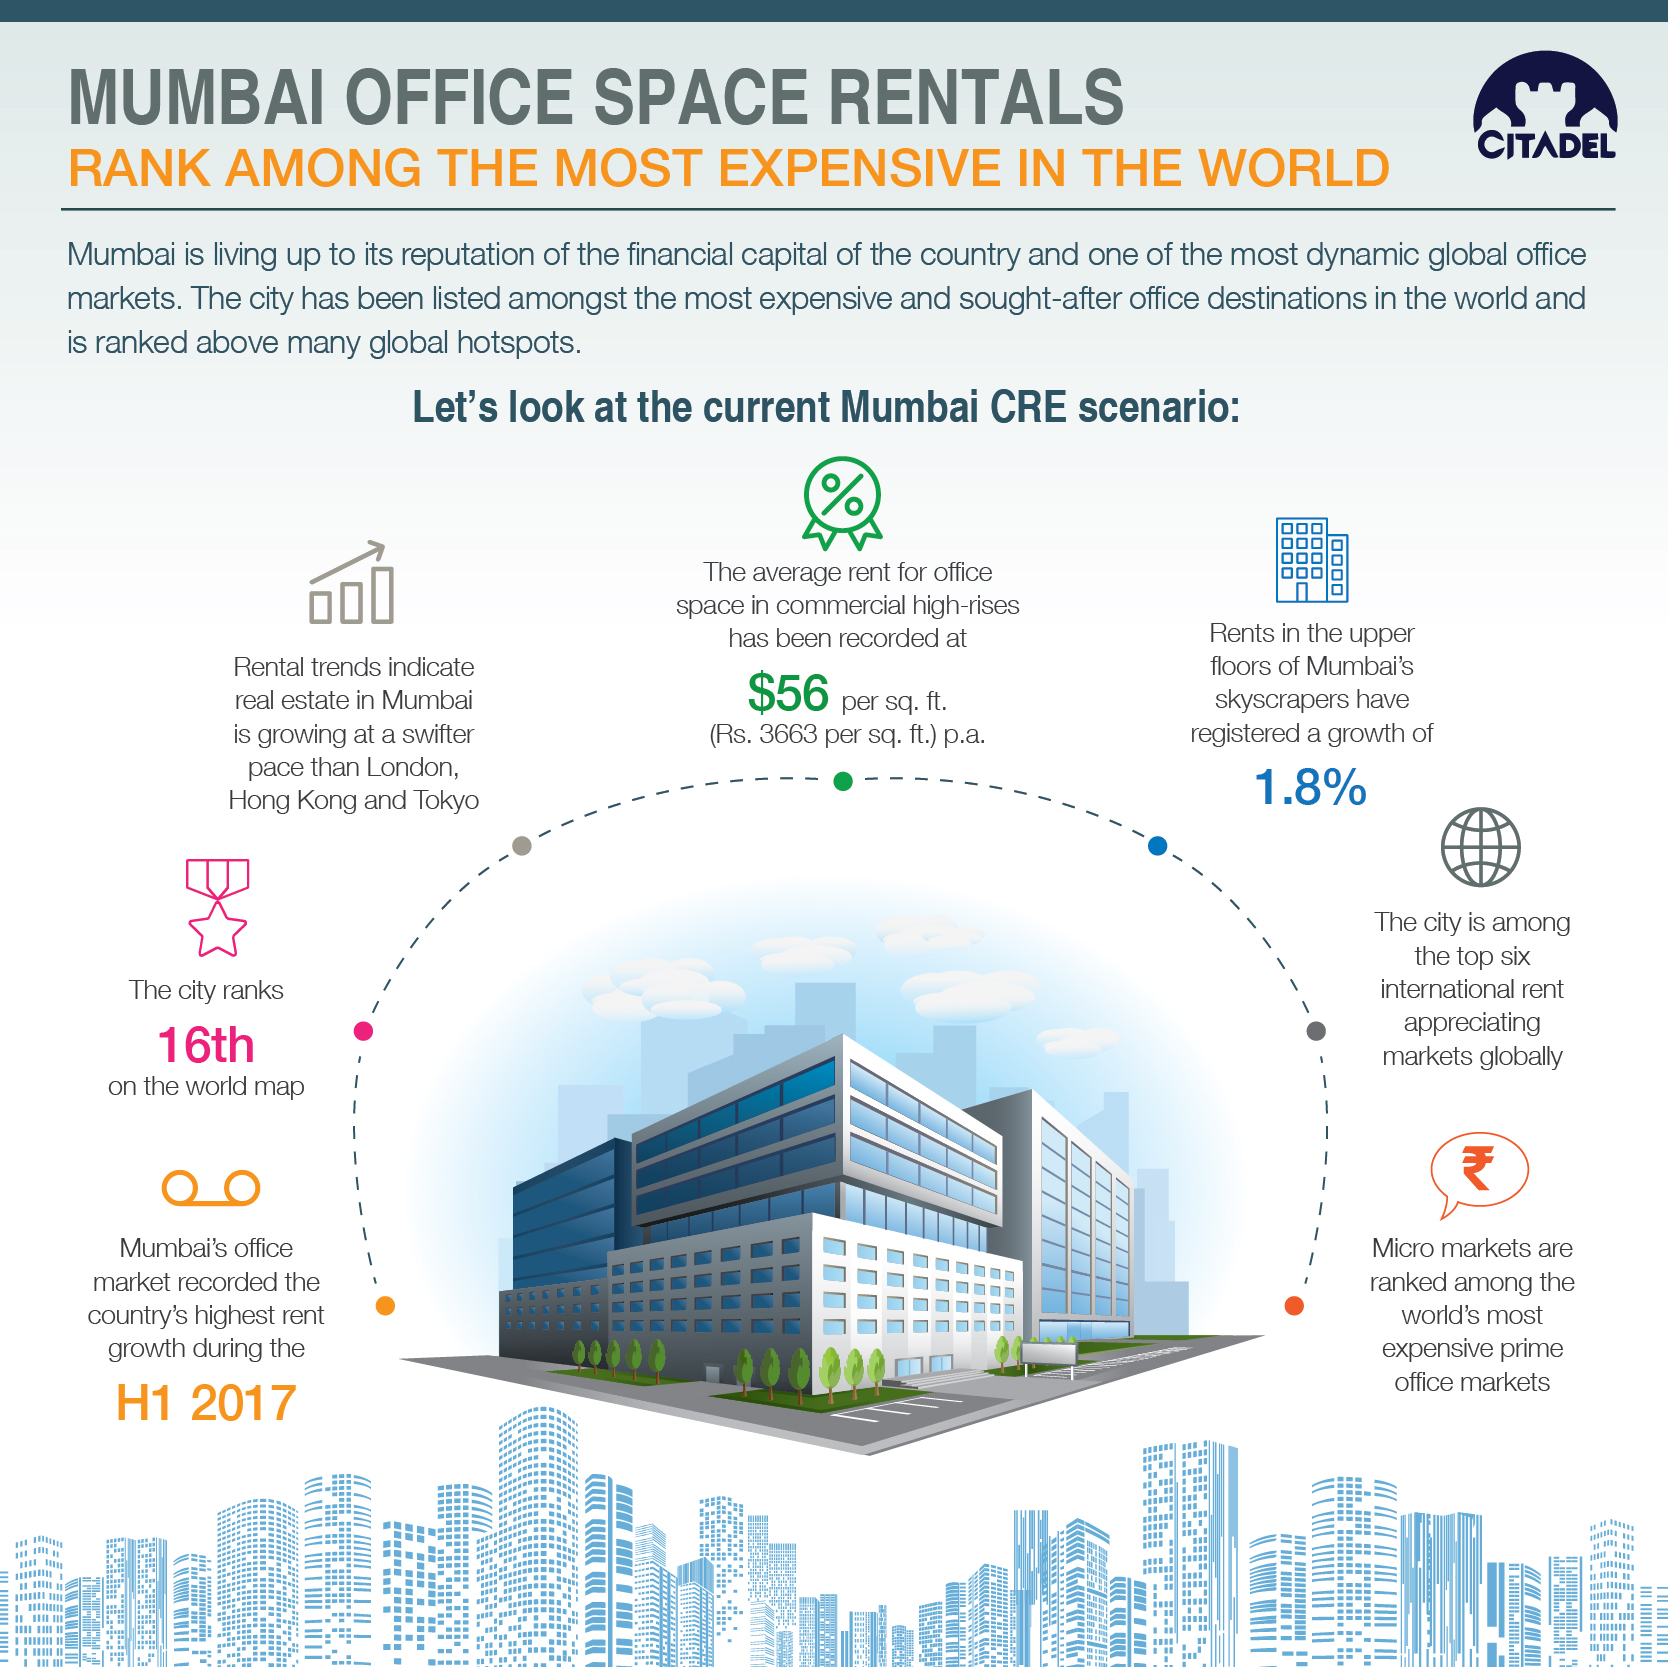 Mumbai Office Space Rentals Rank among the Most Expensive in the World